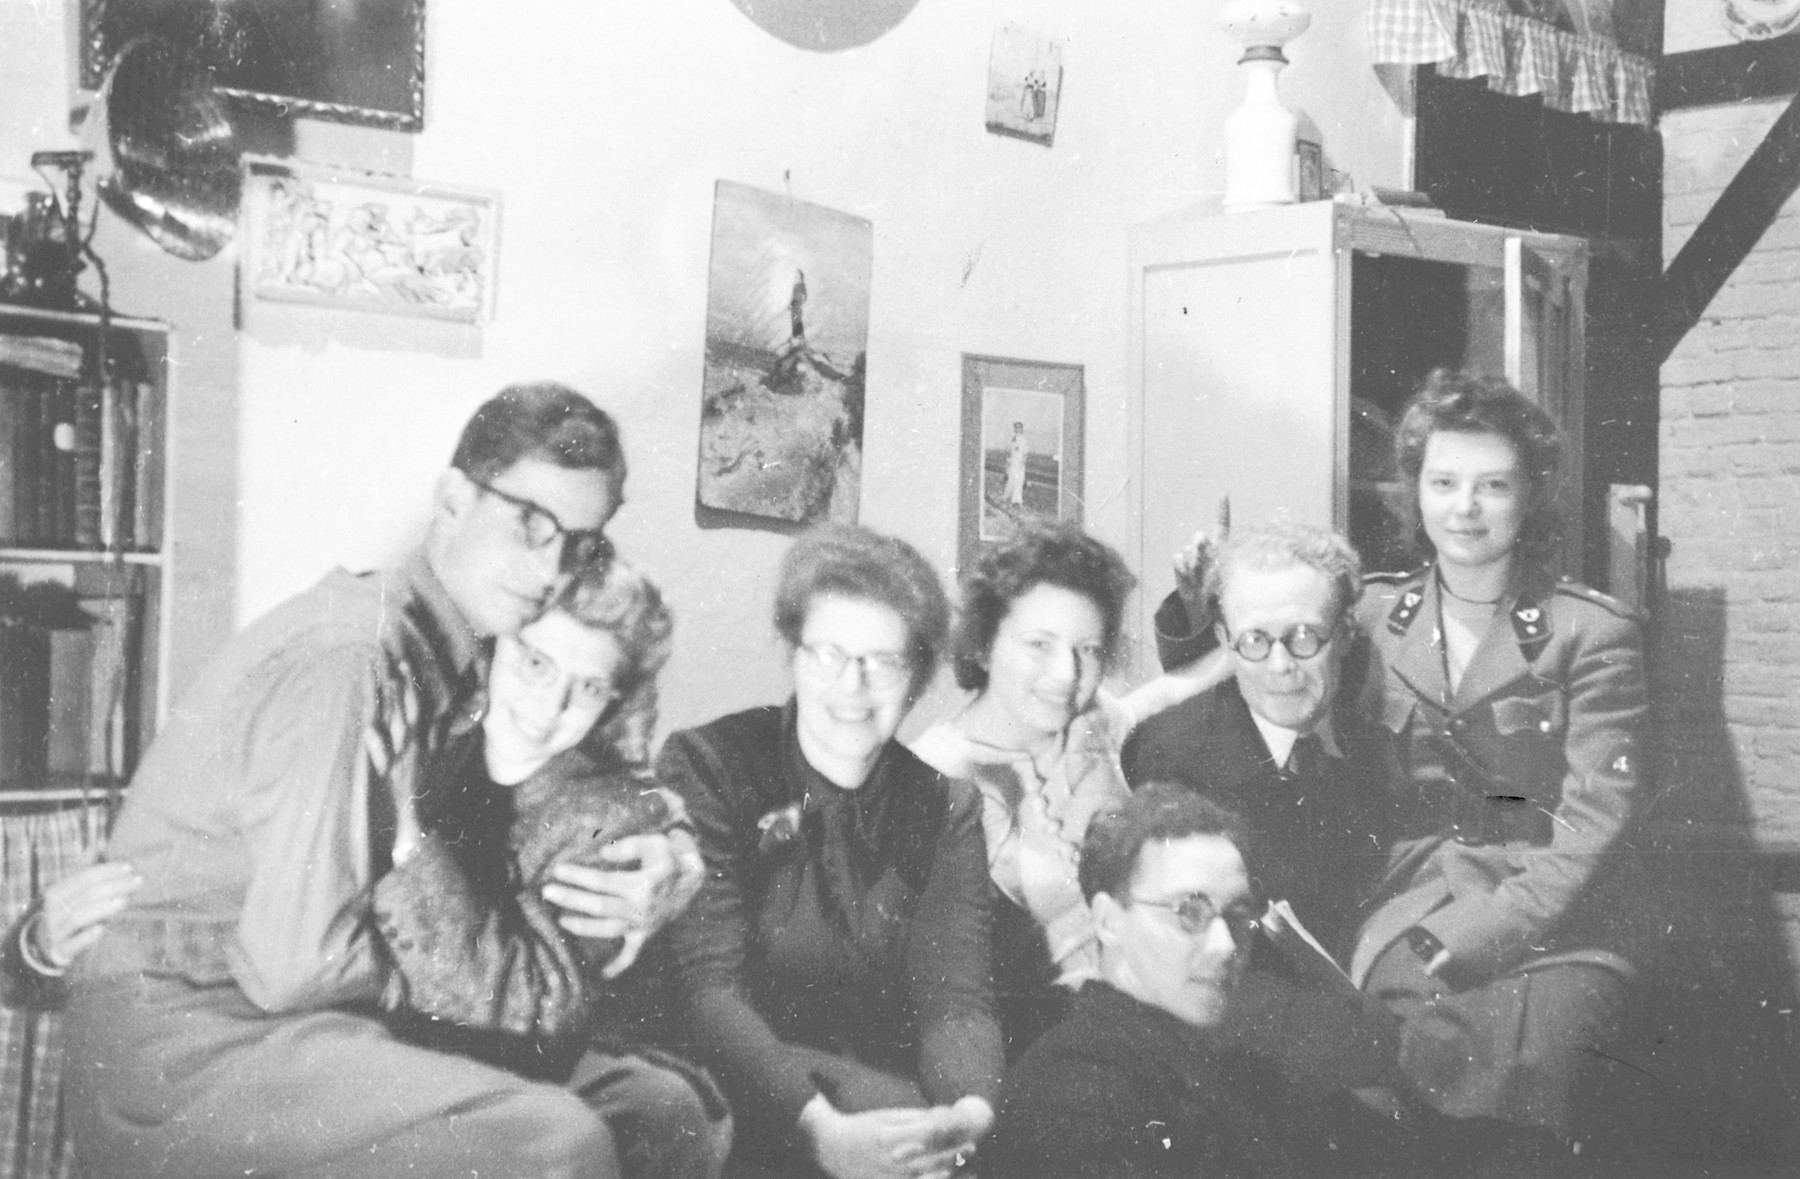 Group portrait of young people gathered in an apartment in Brussels.  Among them is Jeanne Daman (center) who played a major role in resistance and rescue two years later.  Also pictured are Paul, Georgette and Henri Gazan.